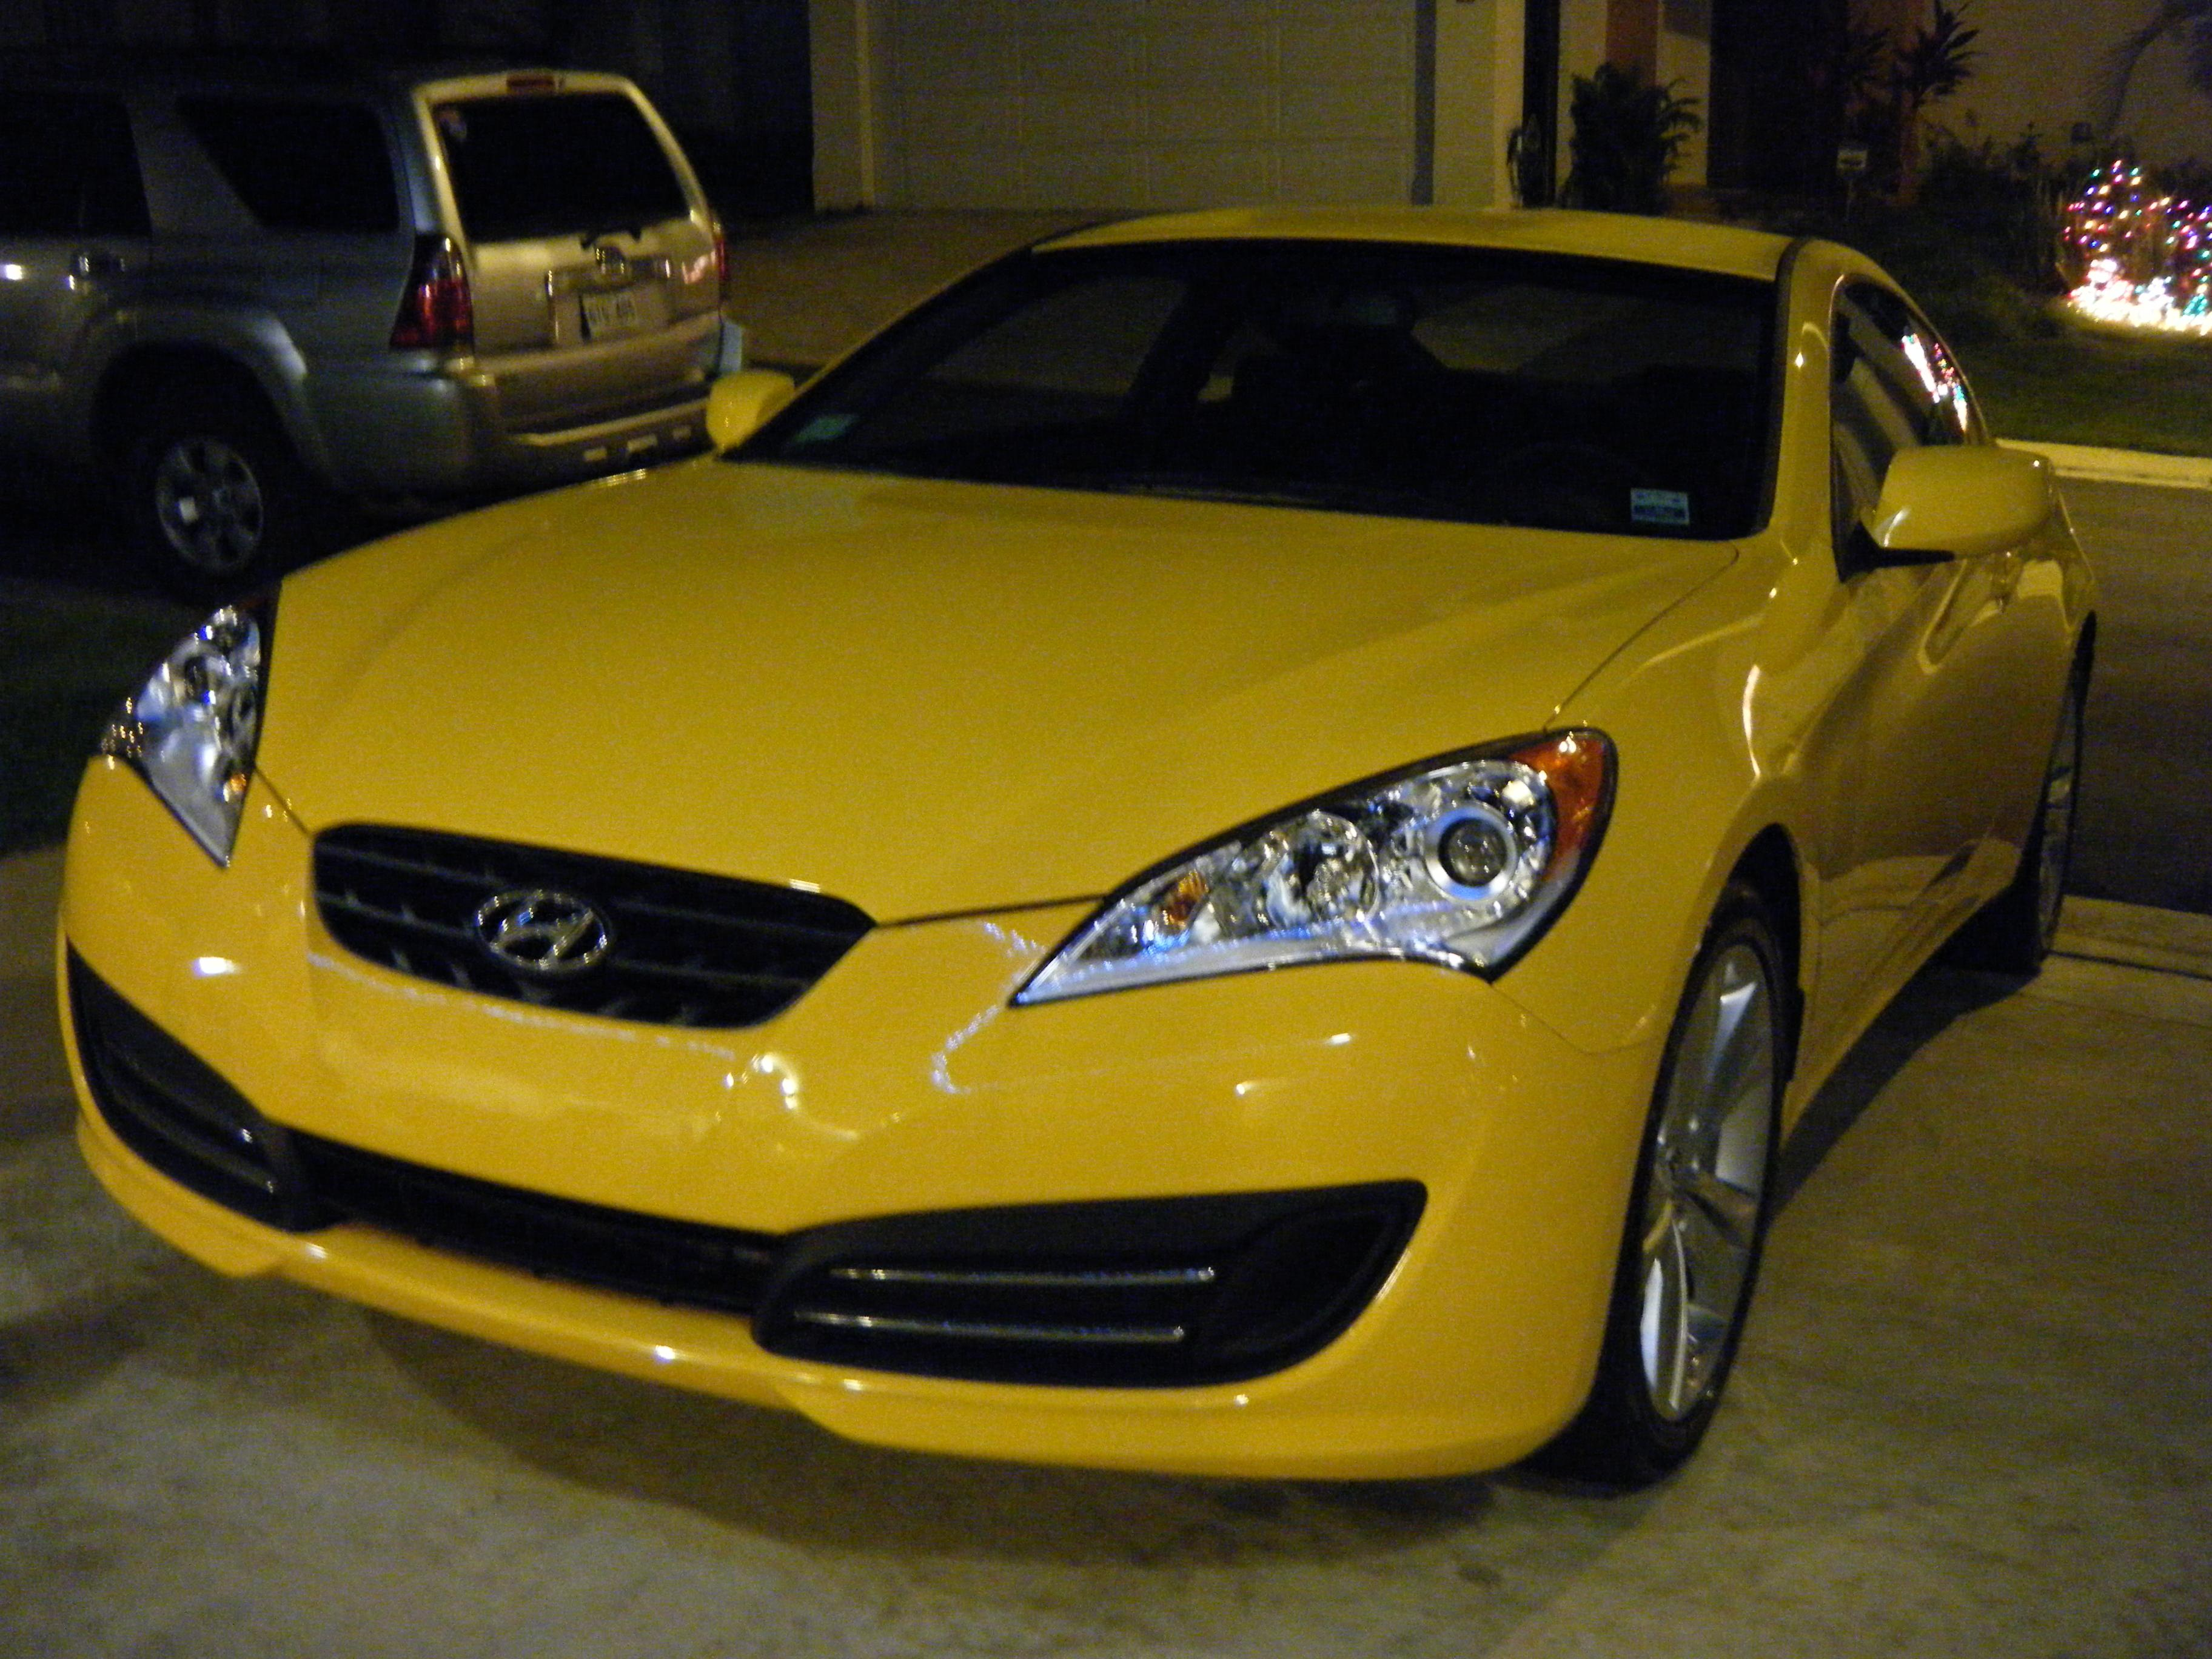 luigi b 2010 hyundai genesis coupe specs photos. Black Bedroom Furniture Sets. Home Design Ideas